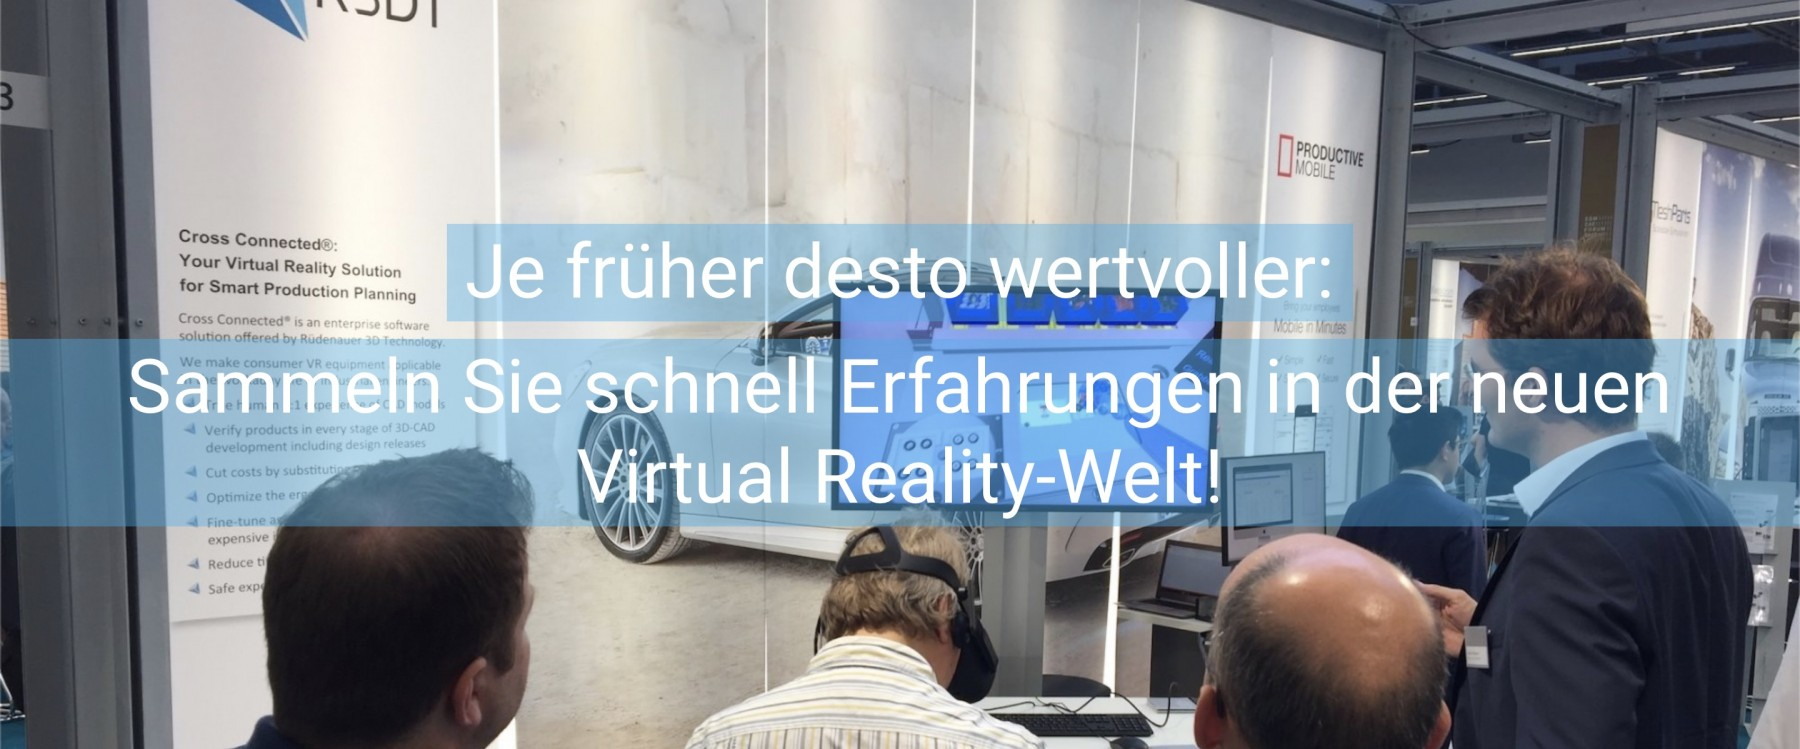 R3DT - MEET YOUR REALITY | Virtual Reality for Industrial